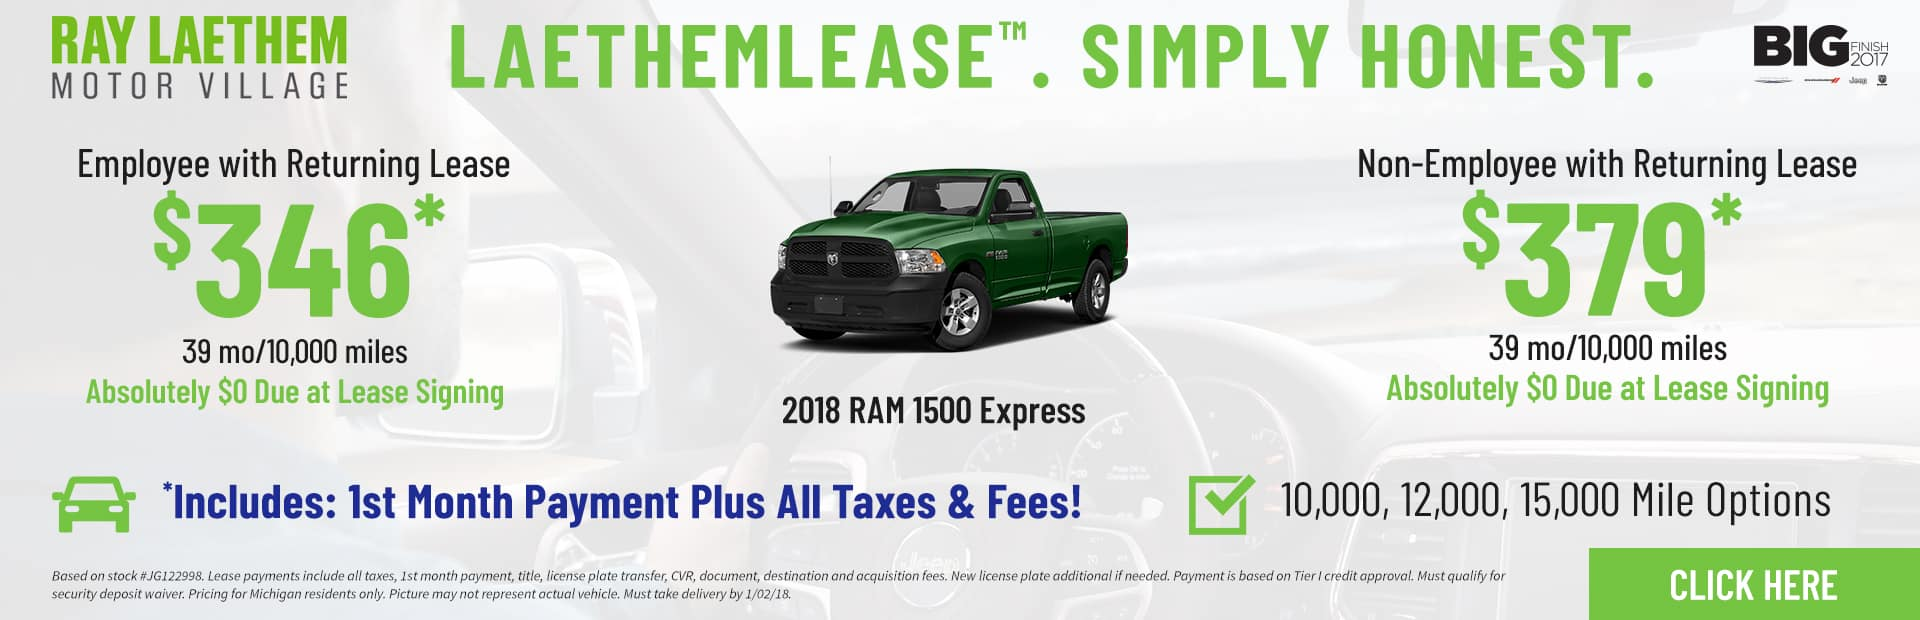 RAM 1500 Express LaethemLease